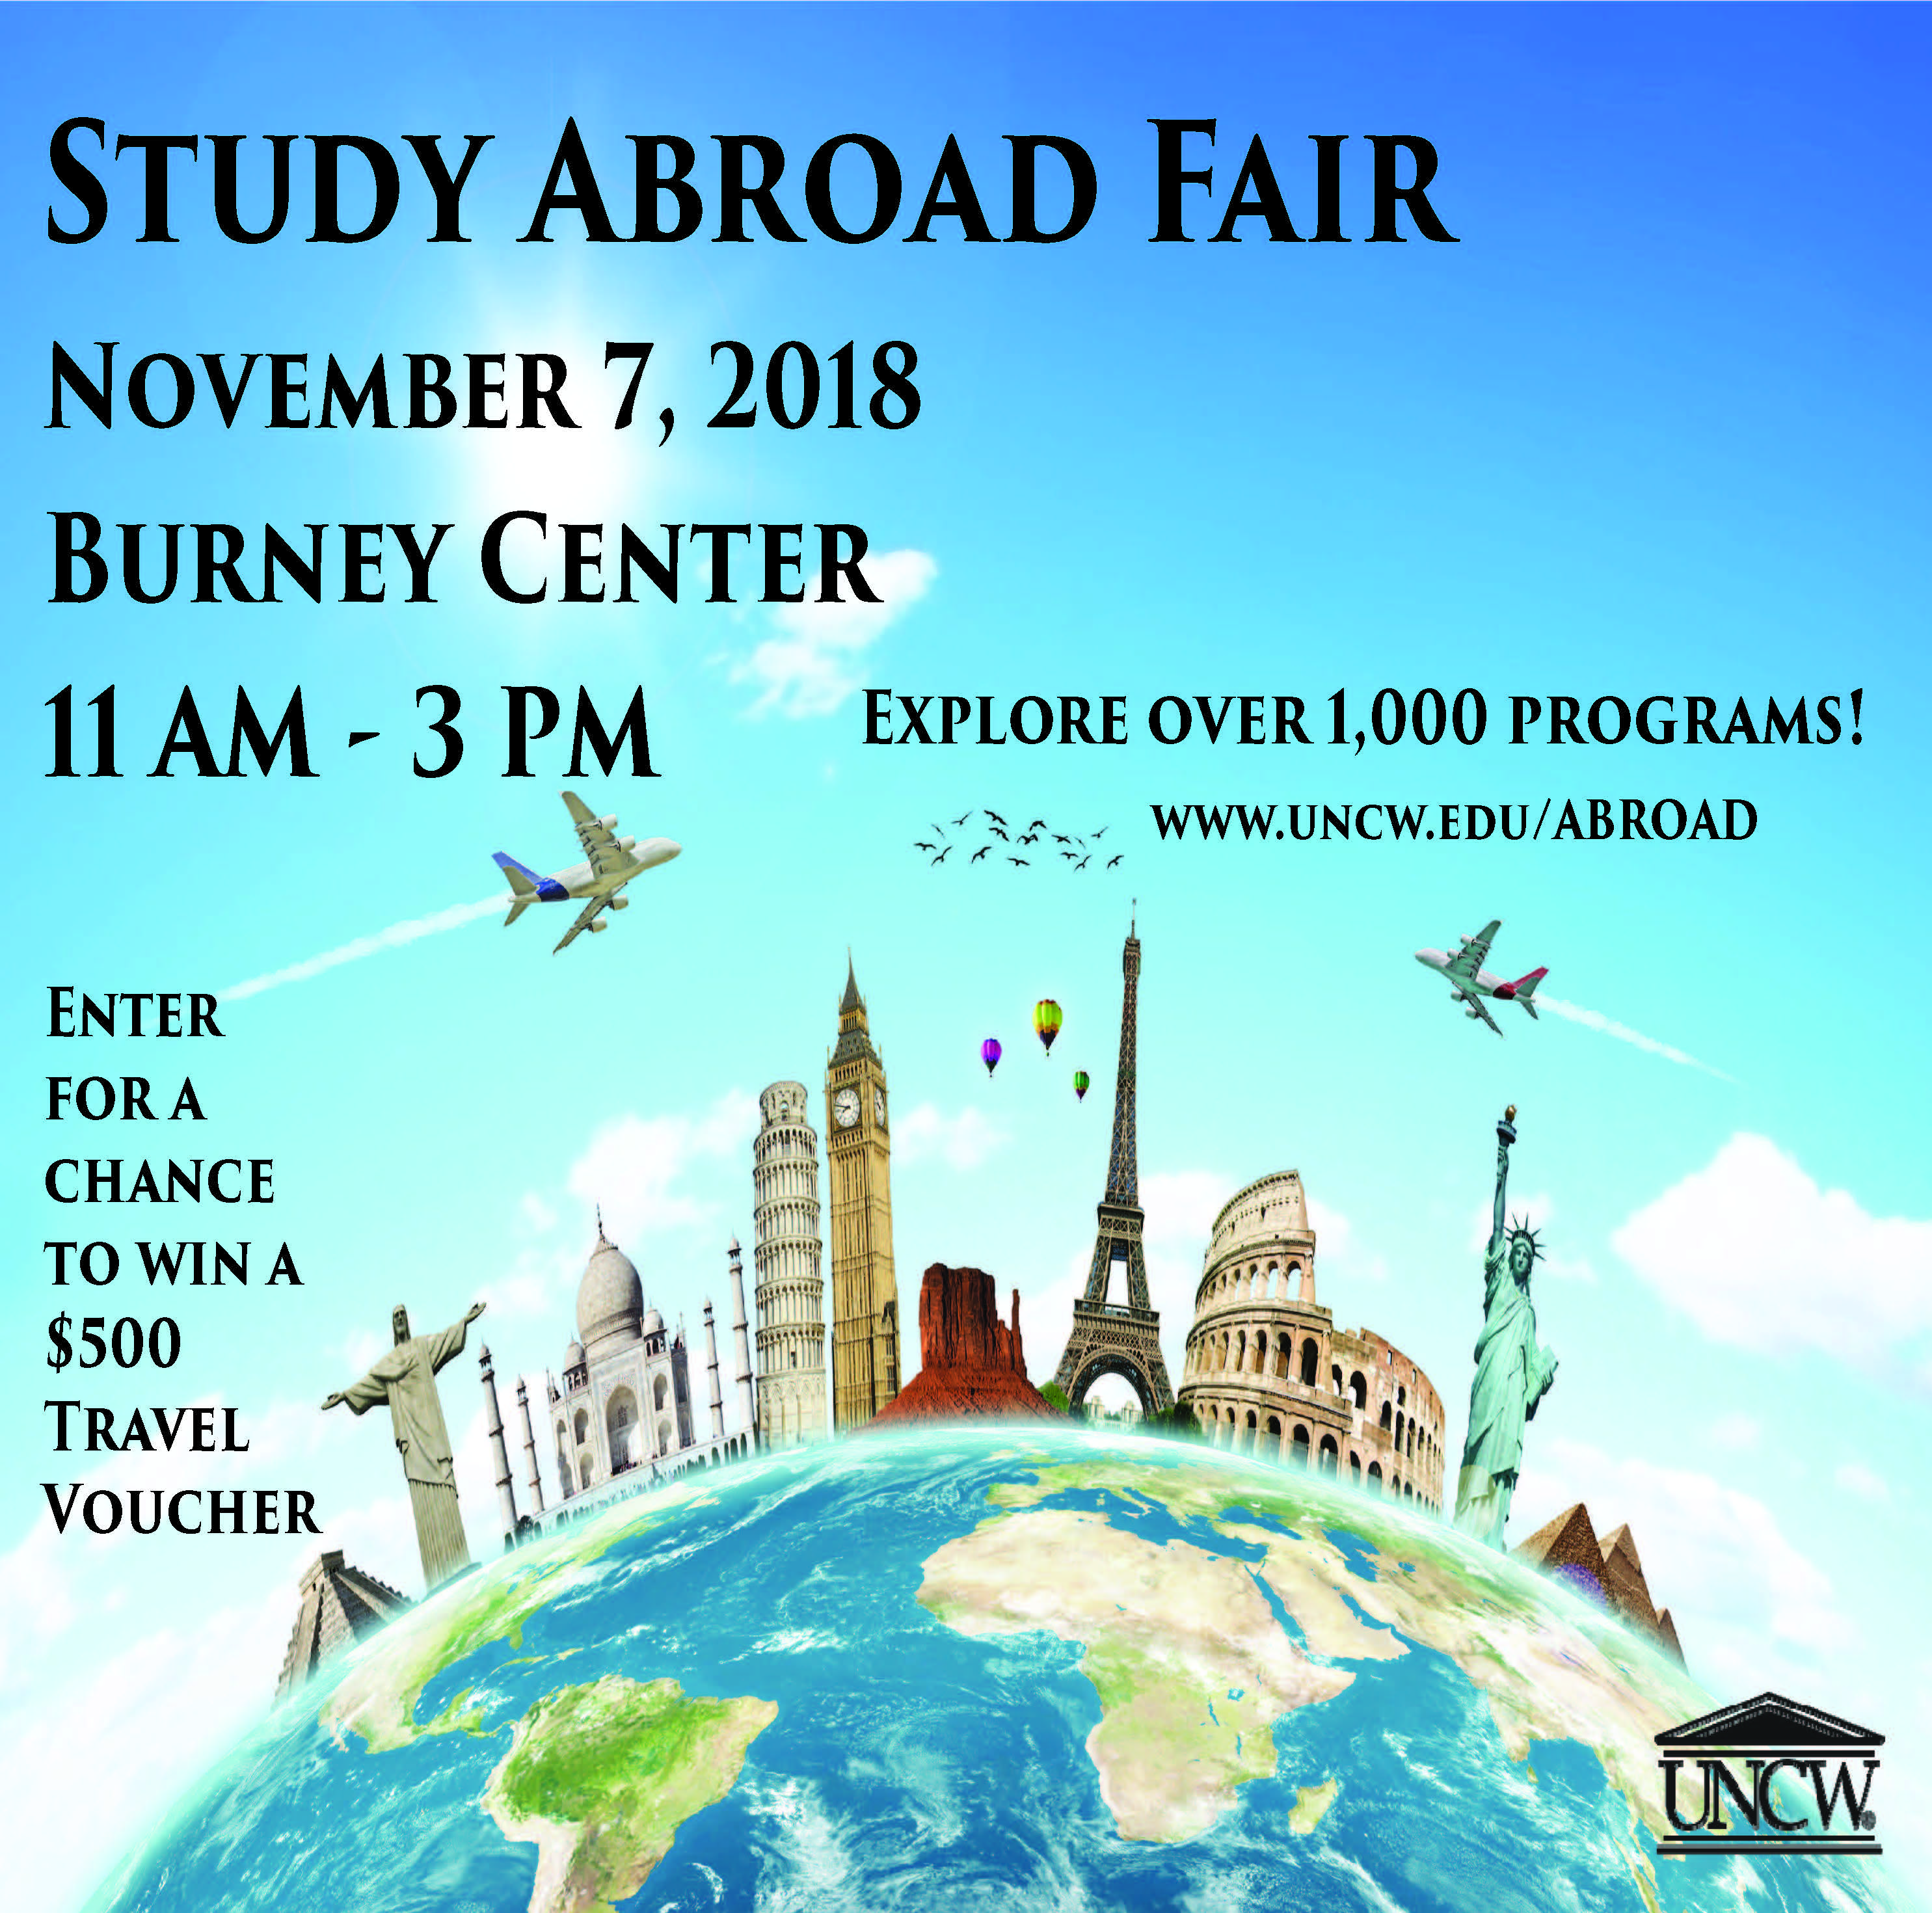 Education Abroad: UNCW